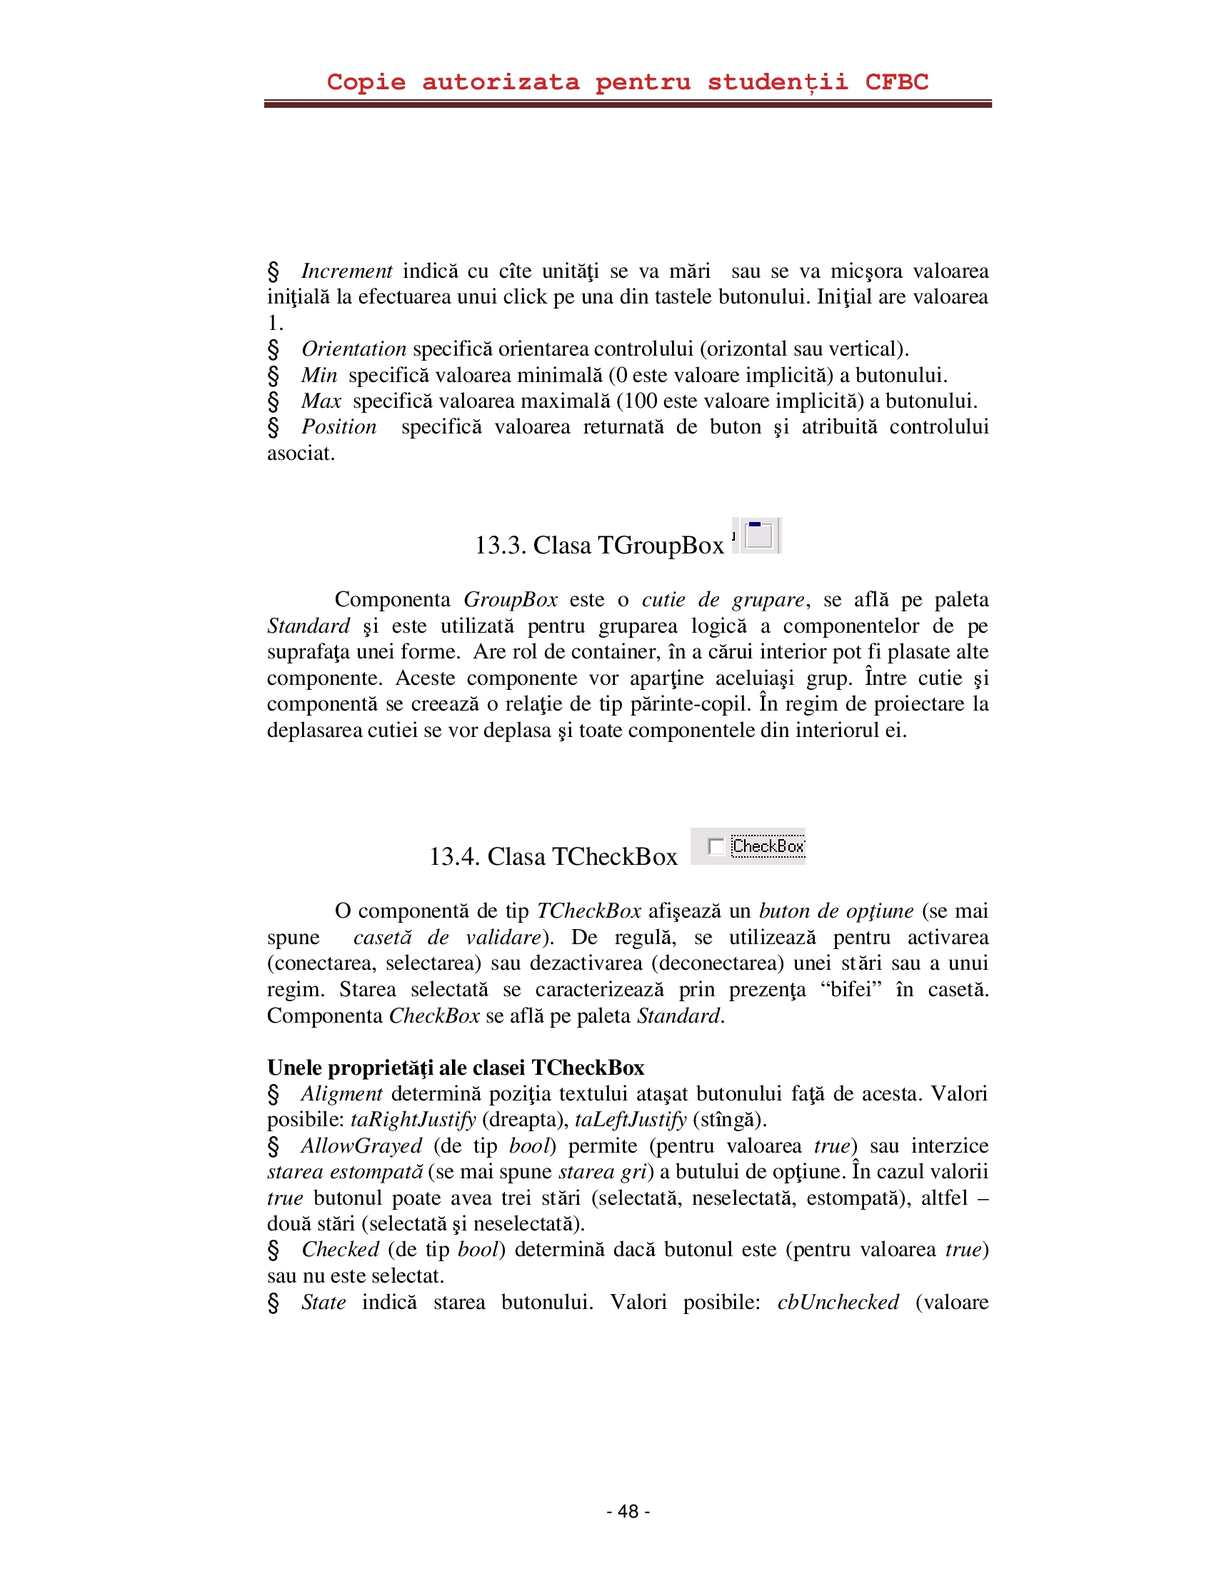 formular de document de opțiune